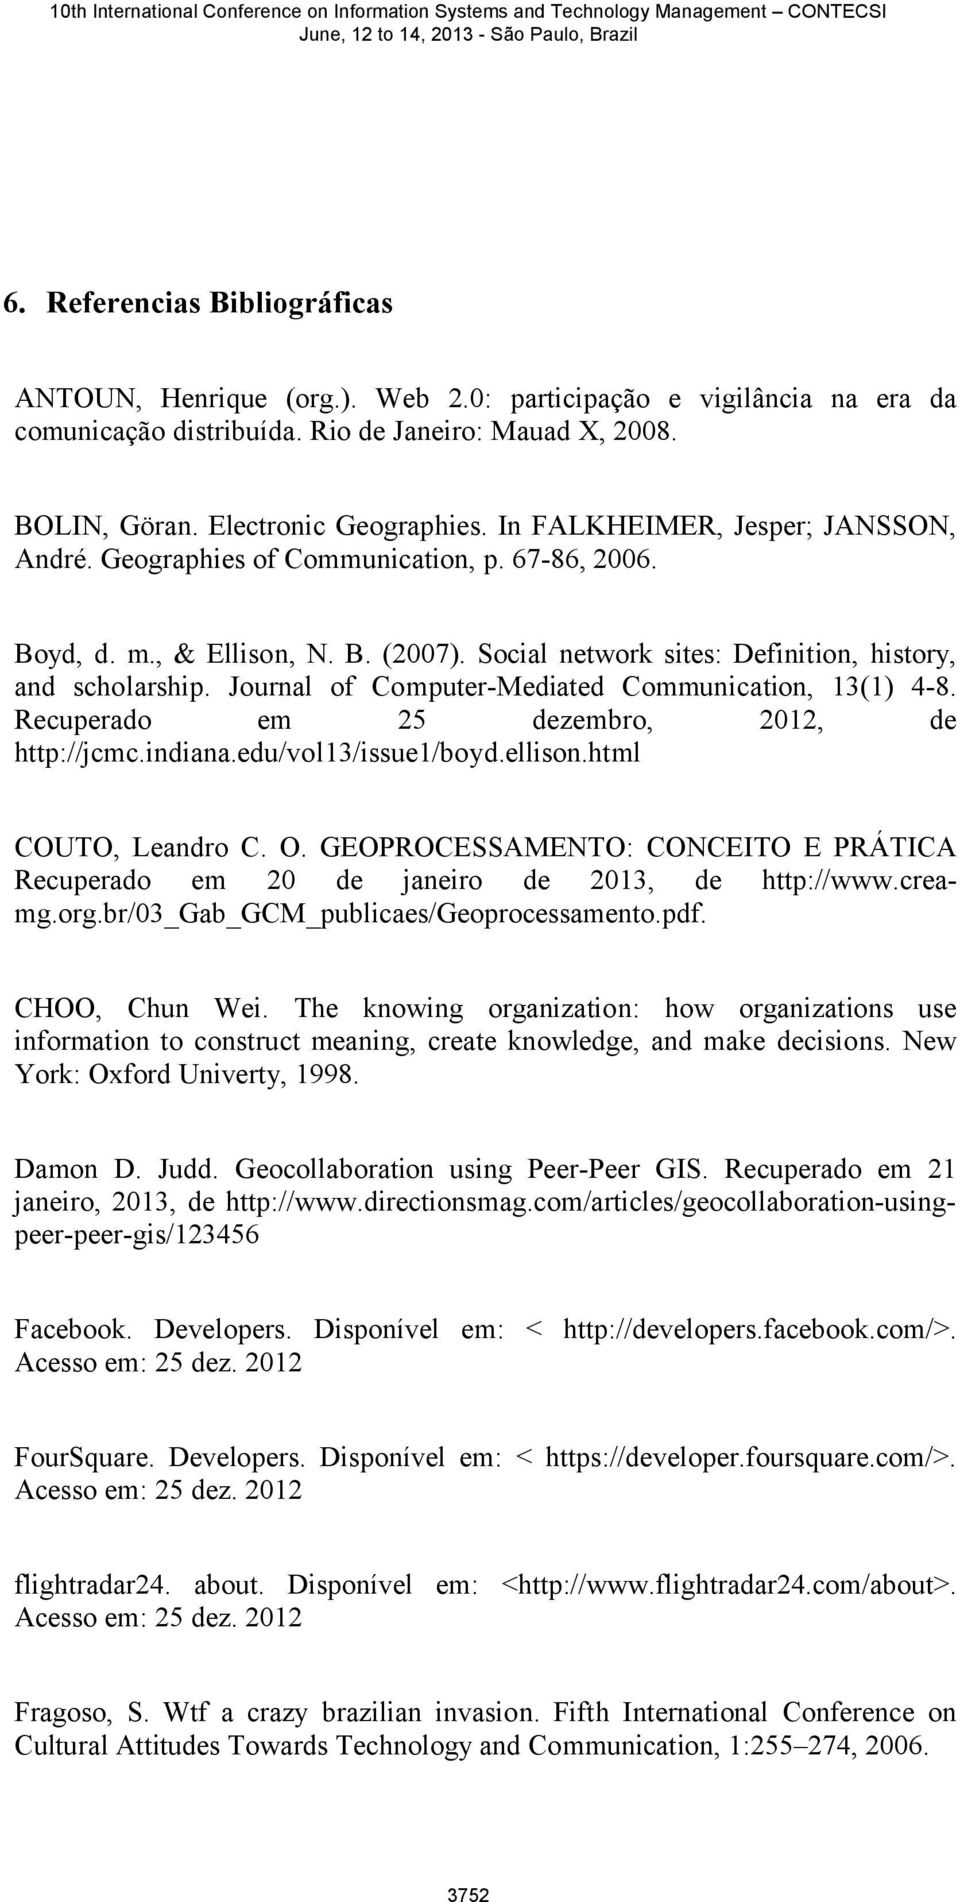 Journal of Computer-Mediated Communication, 13(1) 4-8. Recuperado em 25 dezembro, 2012, de http://jcmc.indiana.edu/vol13/issue1/boyd.ellison.html COUTO, Leandro C. O.